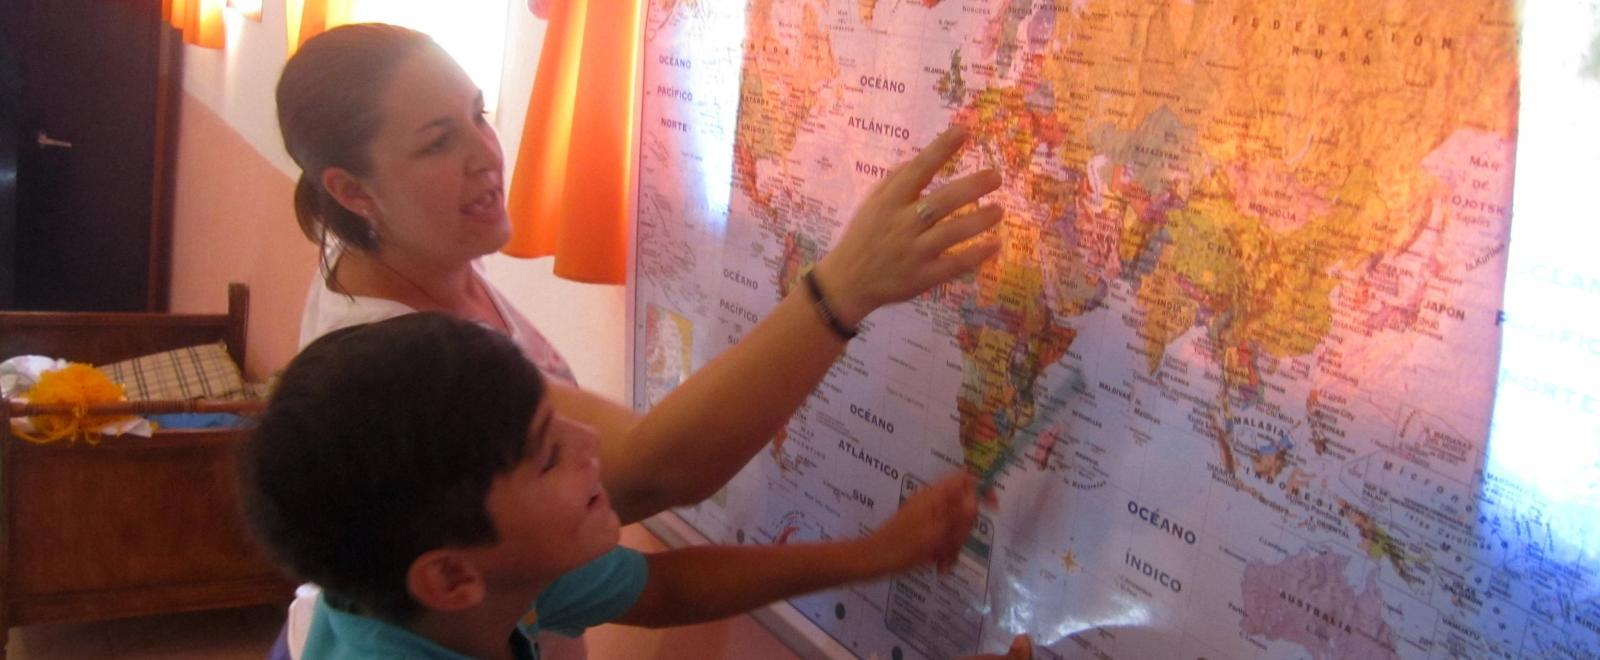 A volunteer teaches geography as part of her volunteer teaching project in Argentina.